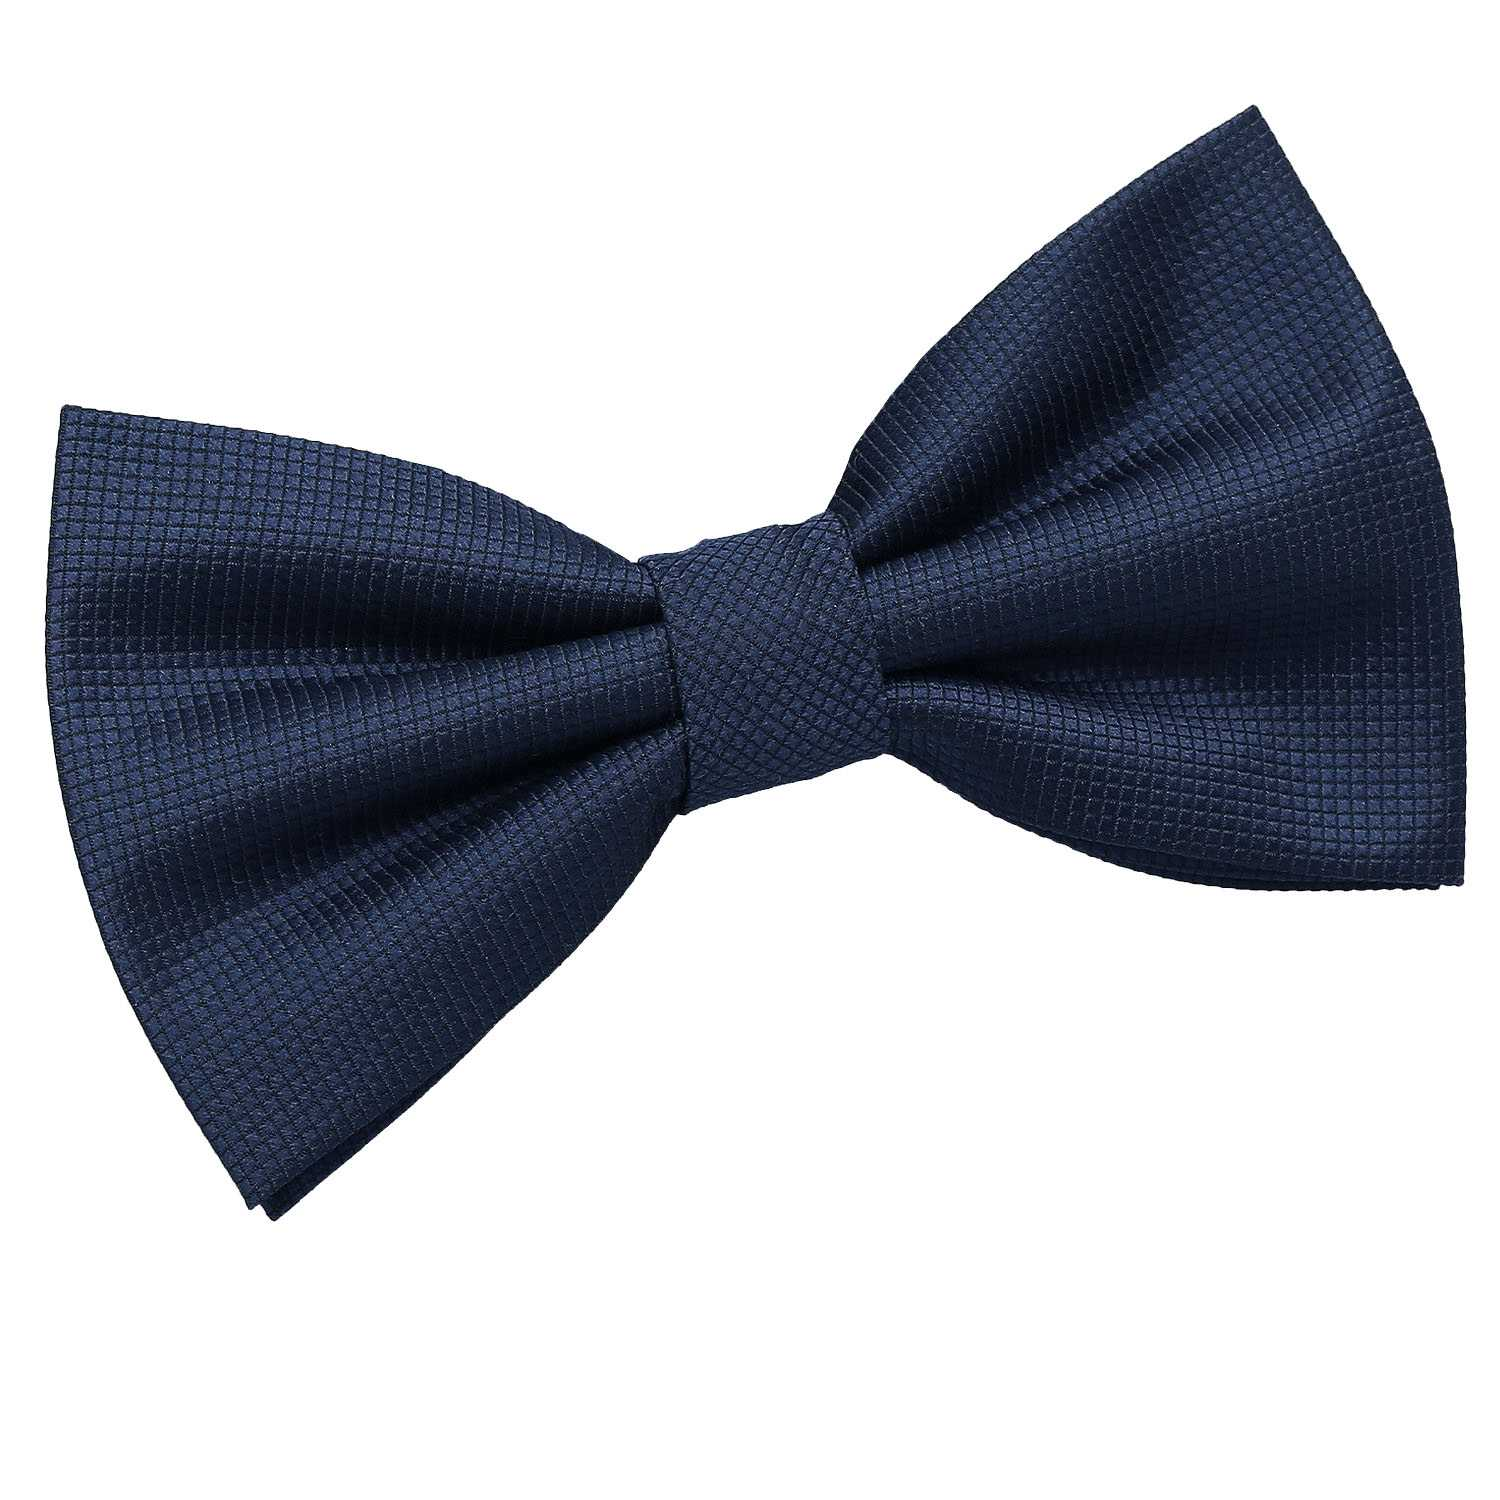 Find great deals on eBay for mens pocket square. Shop with confidence.